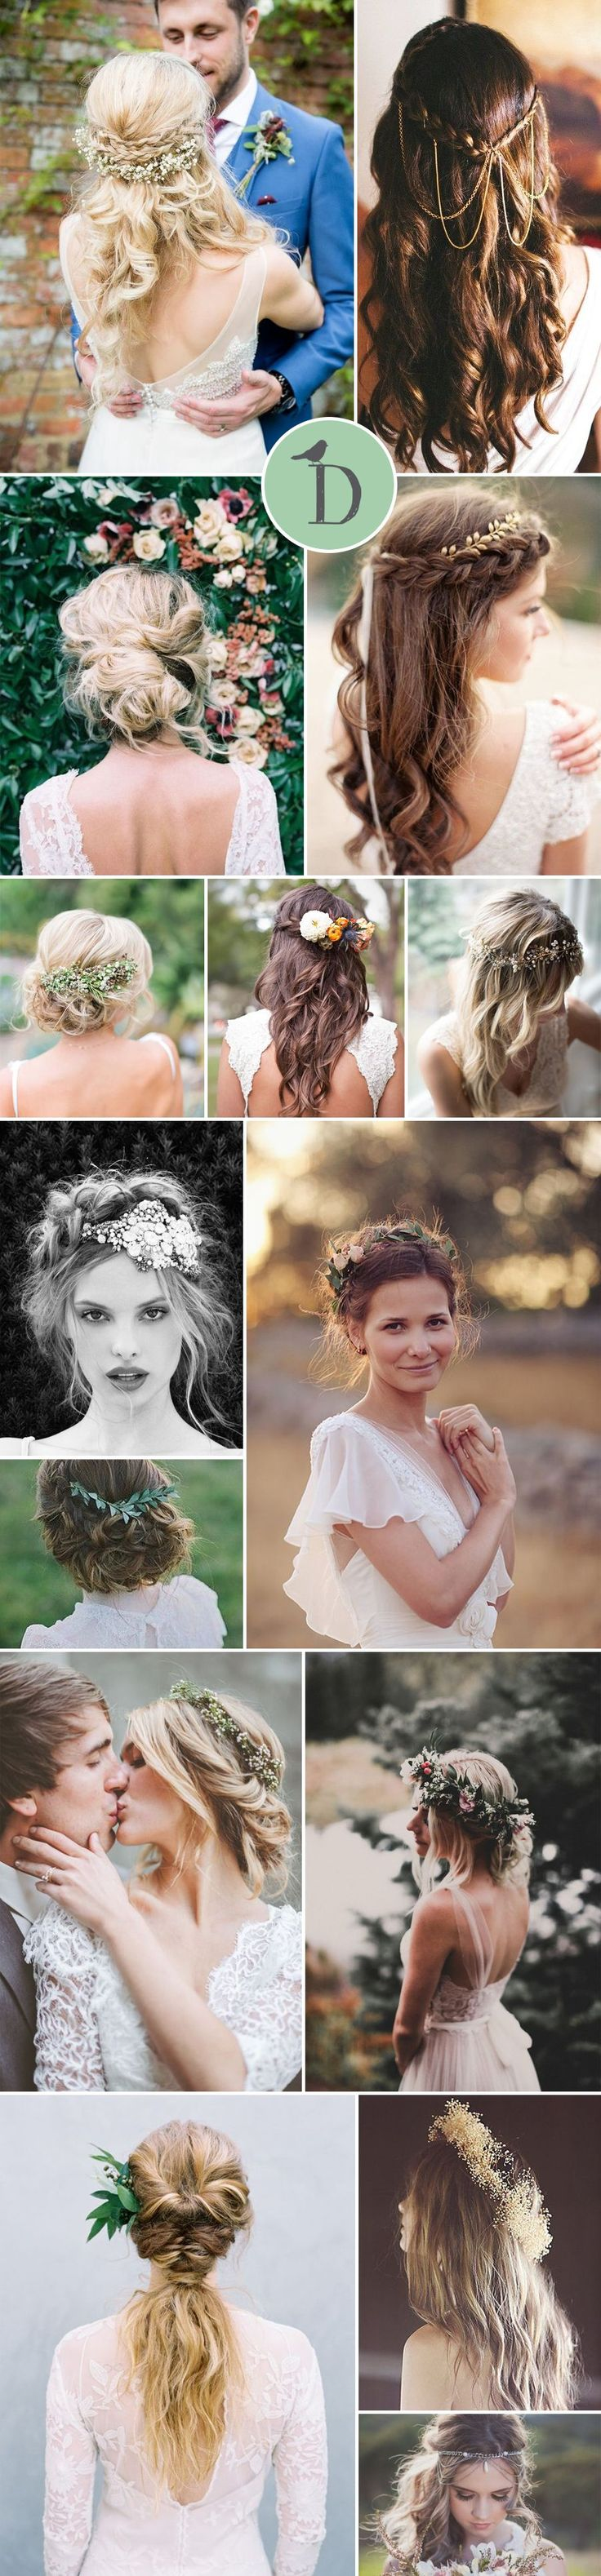 15 PERFECT HAIRSTYLES FOR THE BOHO BRIDE Boho wedding hairstyles tend to have that undone, loose look. Think braids, soft curls and waves, much texturising spray, and obviously, a flower crown helps!